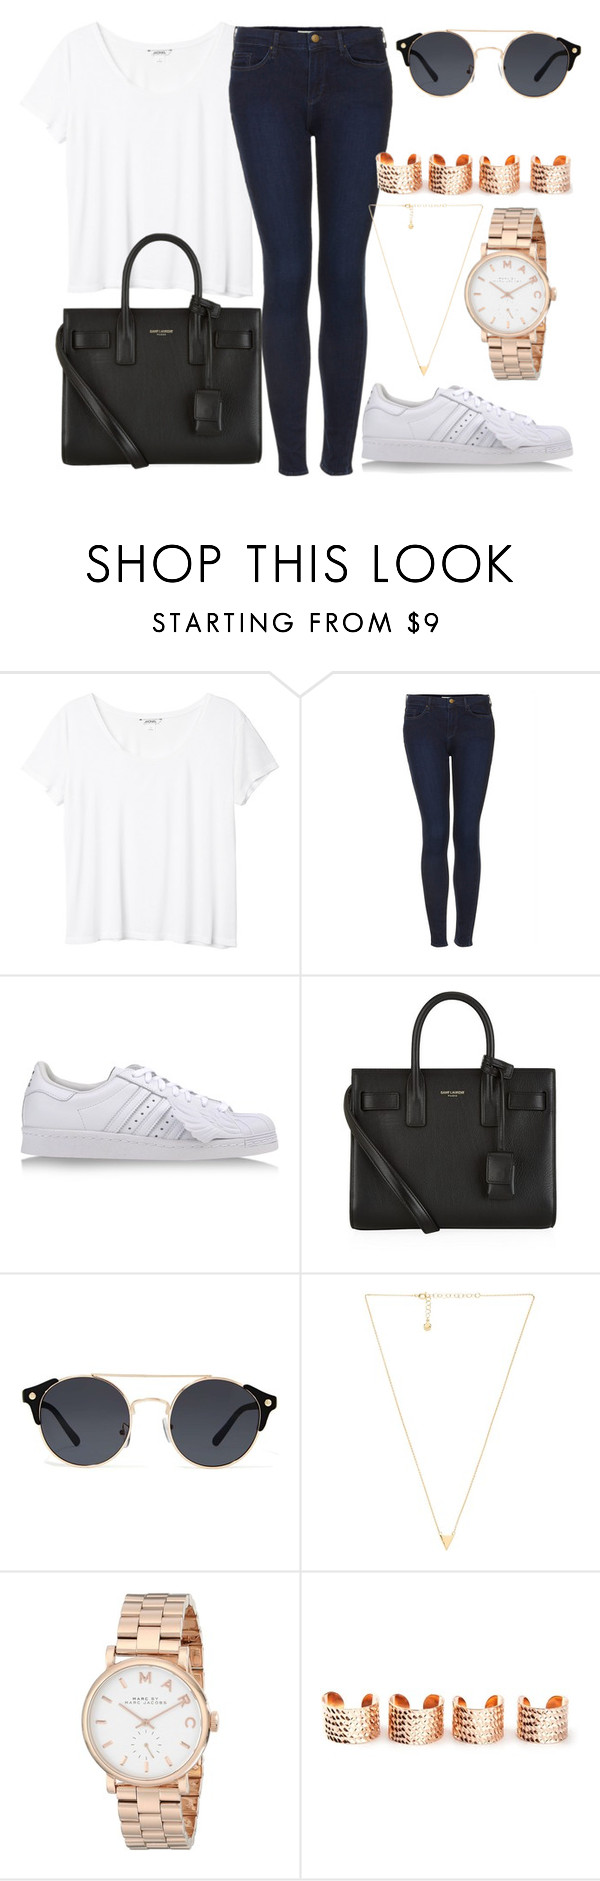 """Untitled #170"" by beautstakingovertheworld ❤ liked on Polyvore featuring Monki, Topshop, adidas, Yves Saint Laurent, A.J. Morgan, Gorjana, Marc by Marc Jacobs, Maison Margiela, women's clothing and women"